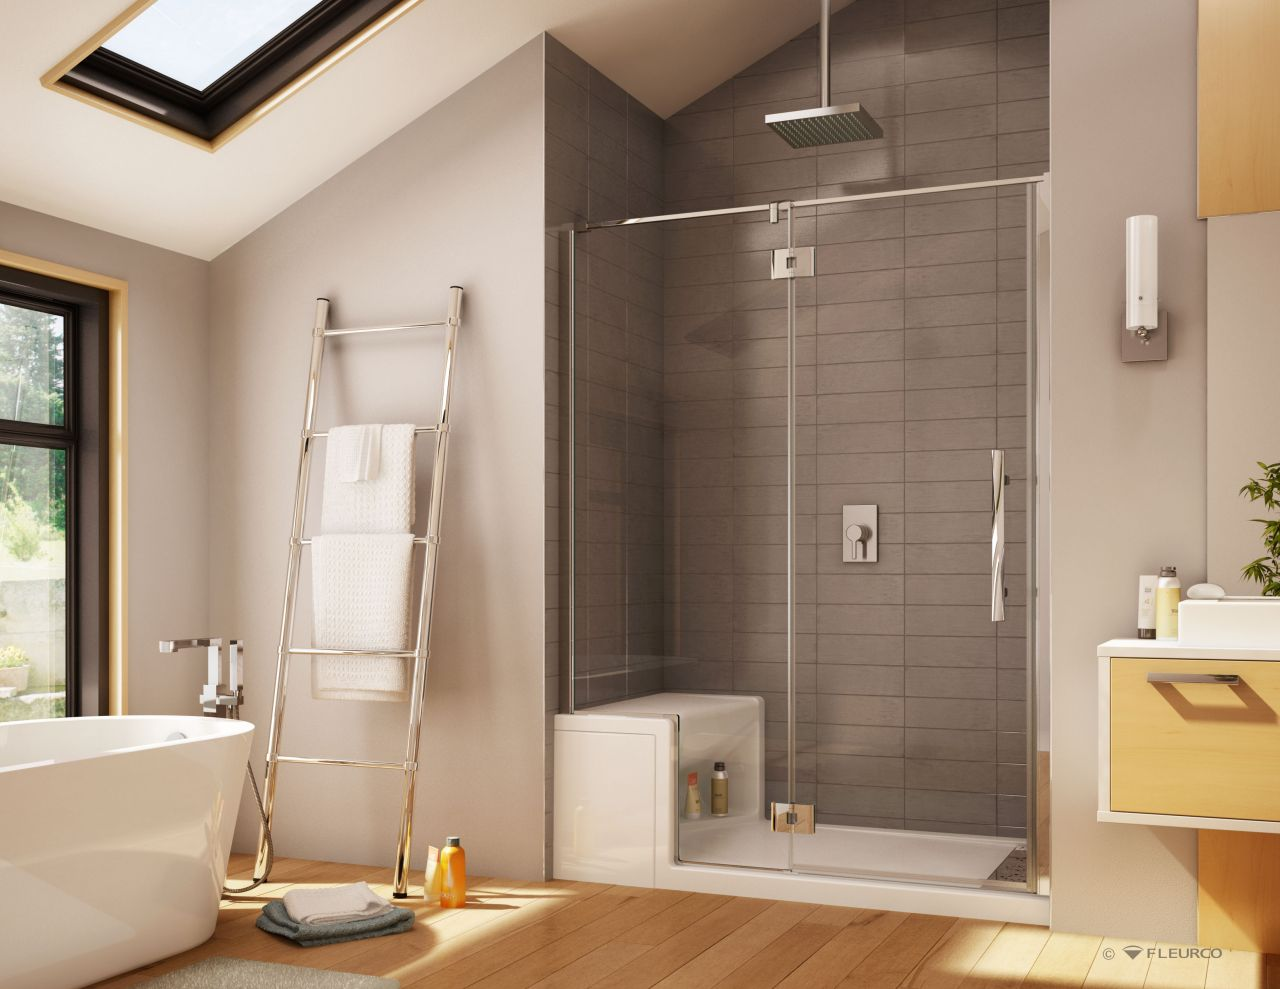 Alessa 60 x 36 acrylic shower base with Platinum series glass enclosure -  one wall system